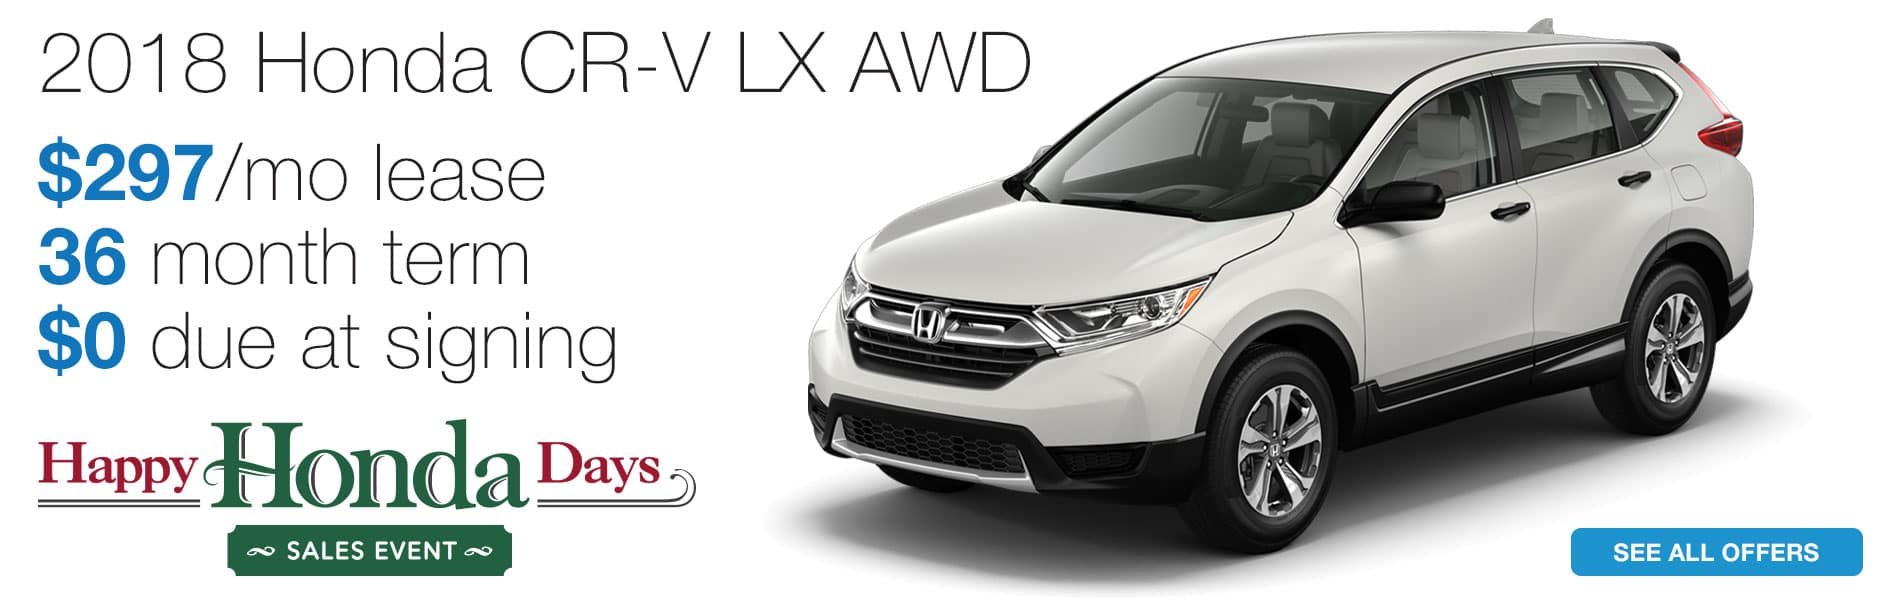 Lease a 2018 Honda CR-V LX AWD for $297 per month lease with $0 due at signing